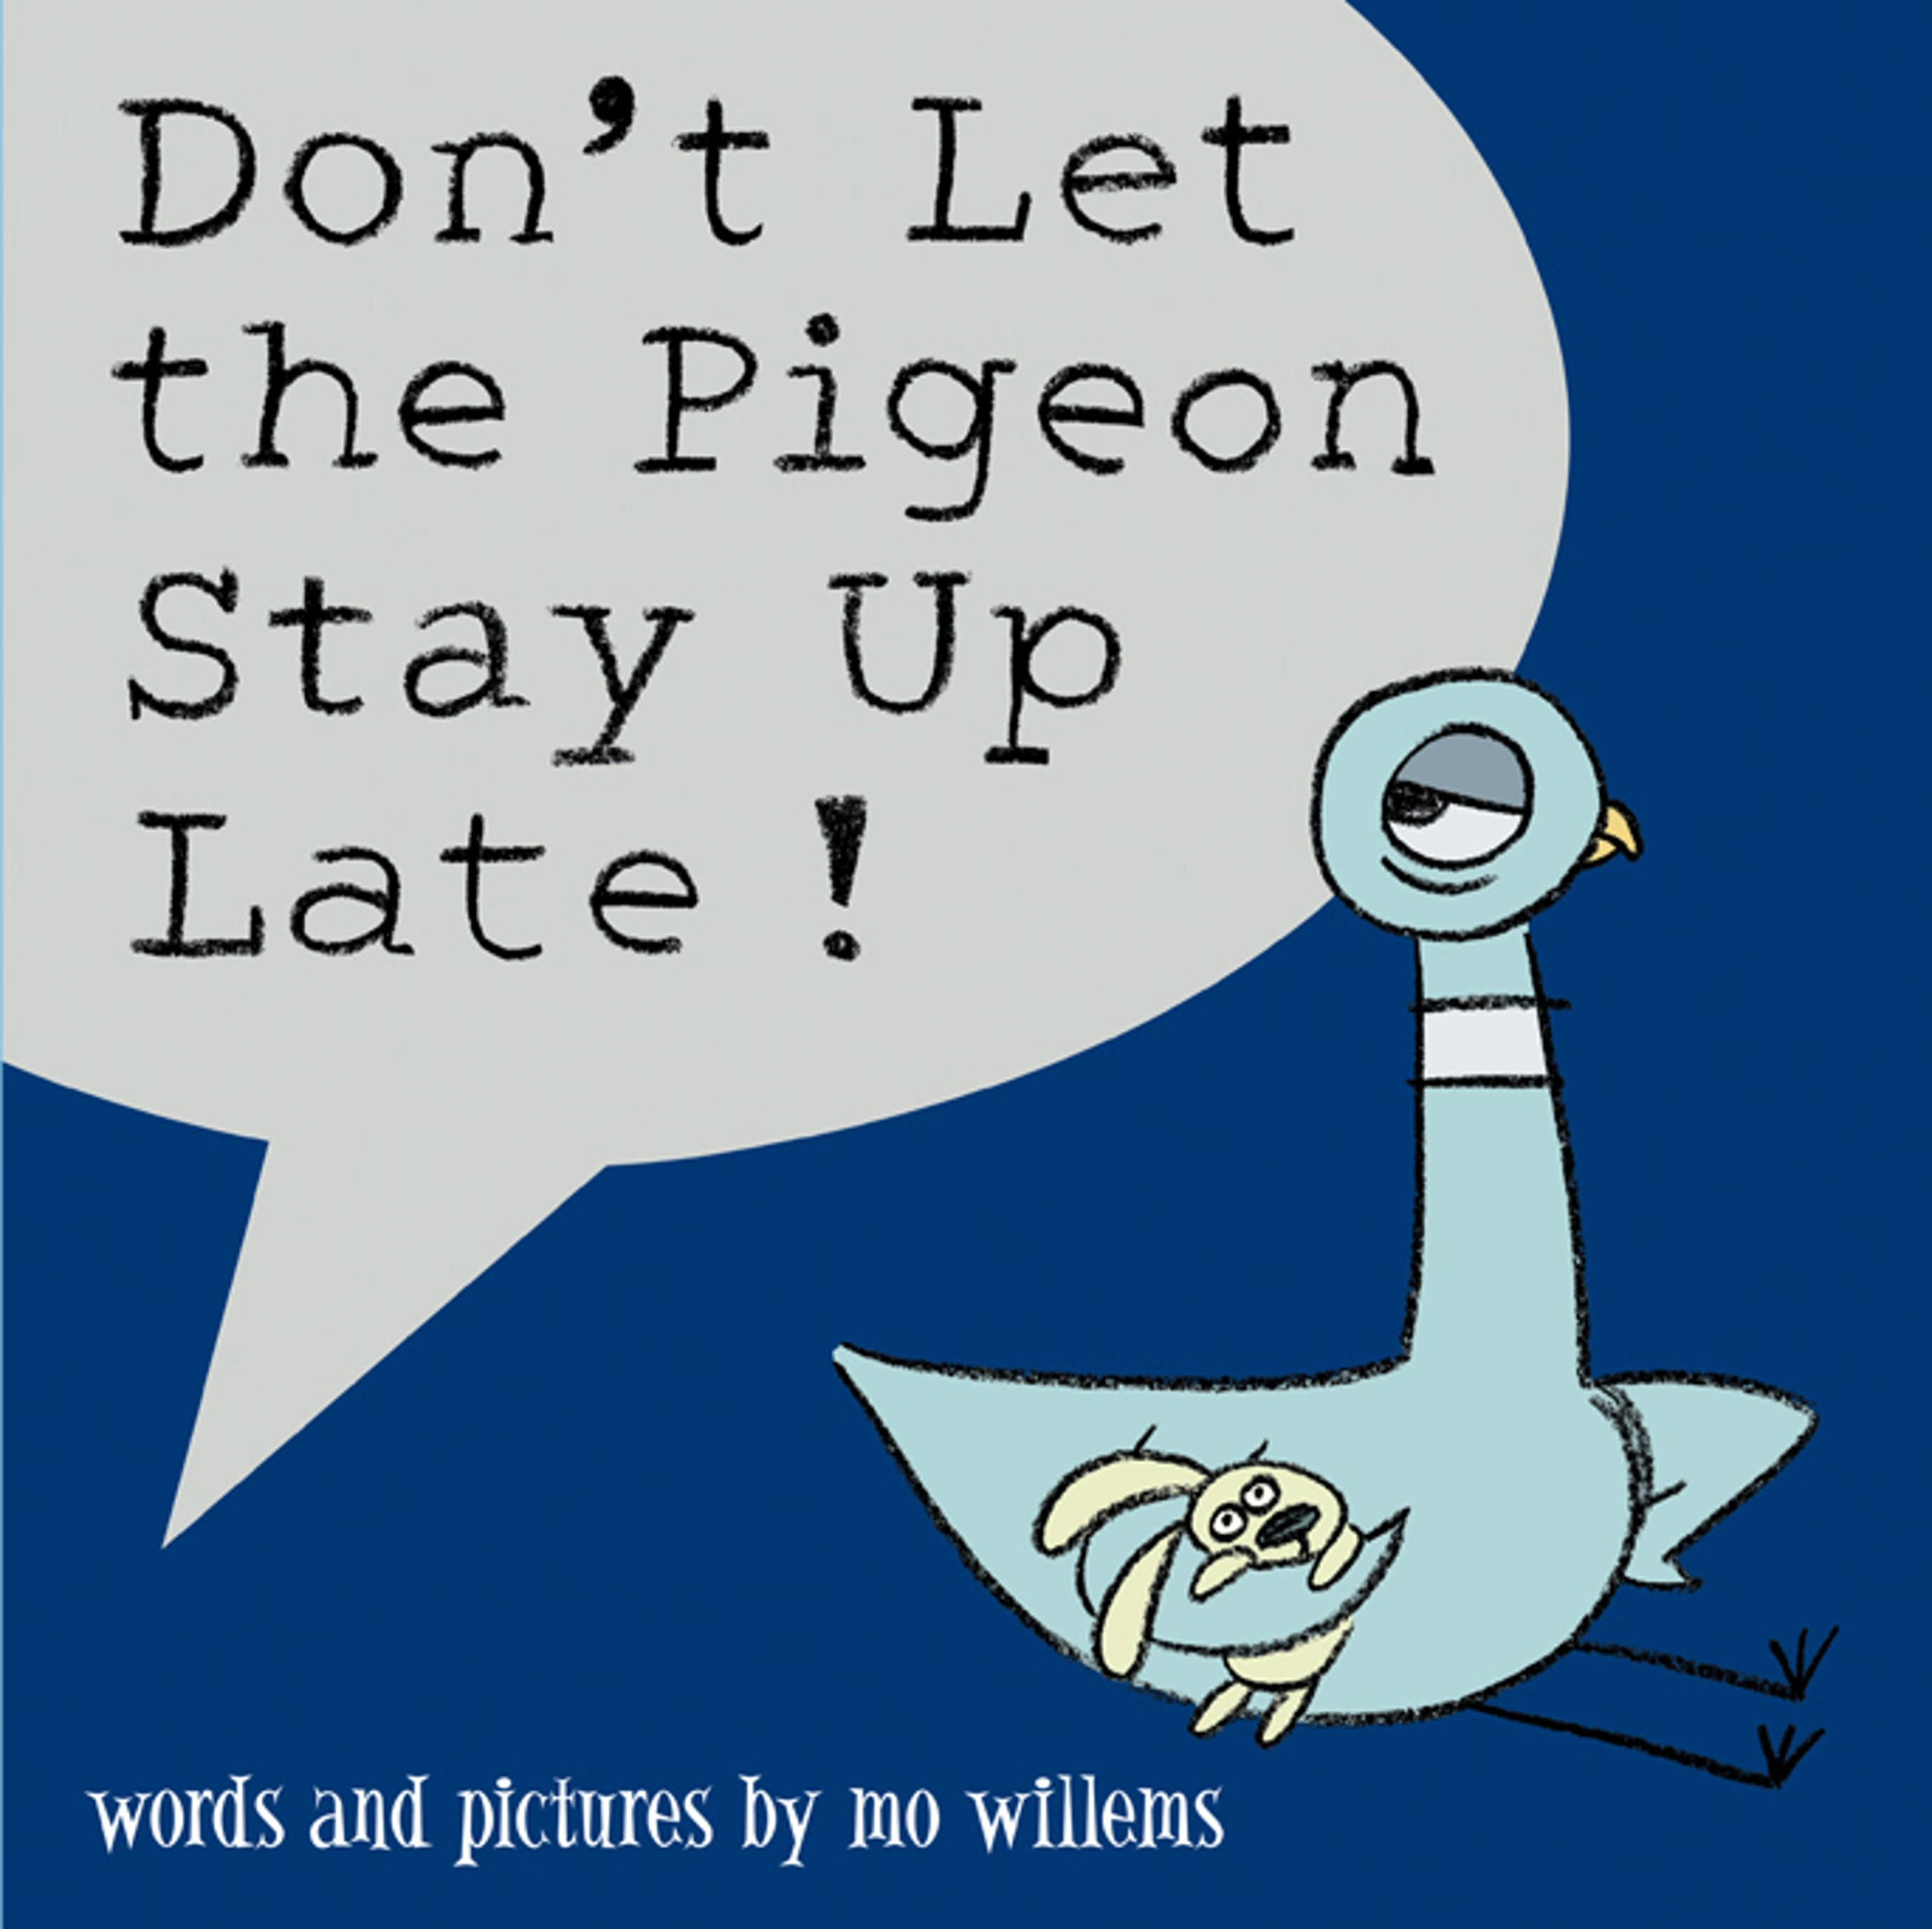 don't let the pigeon stay up late.jpg